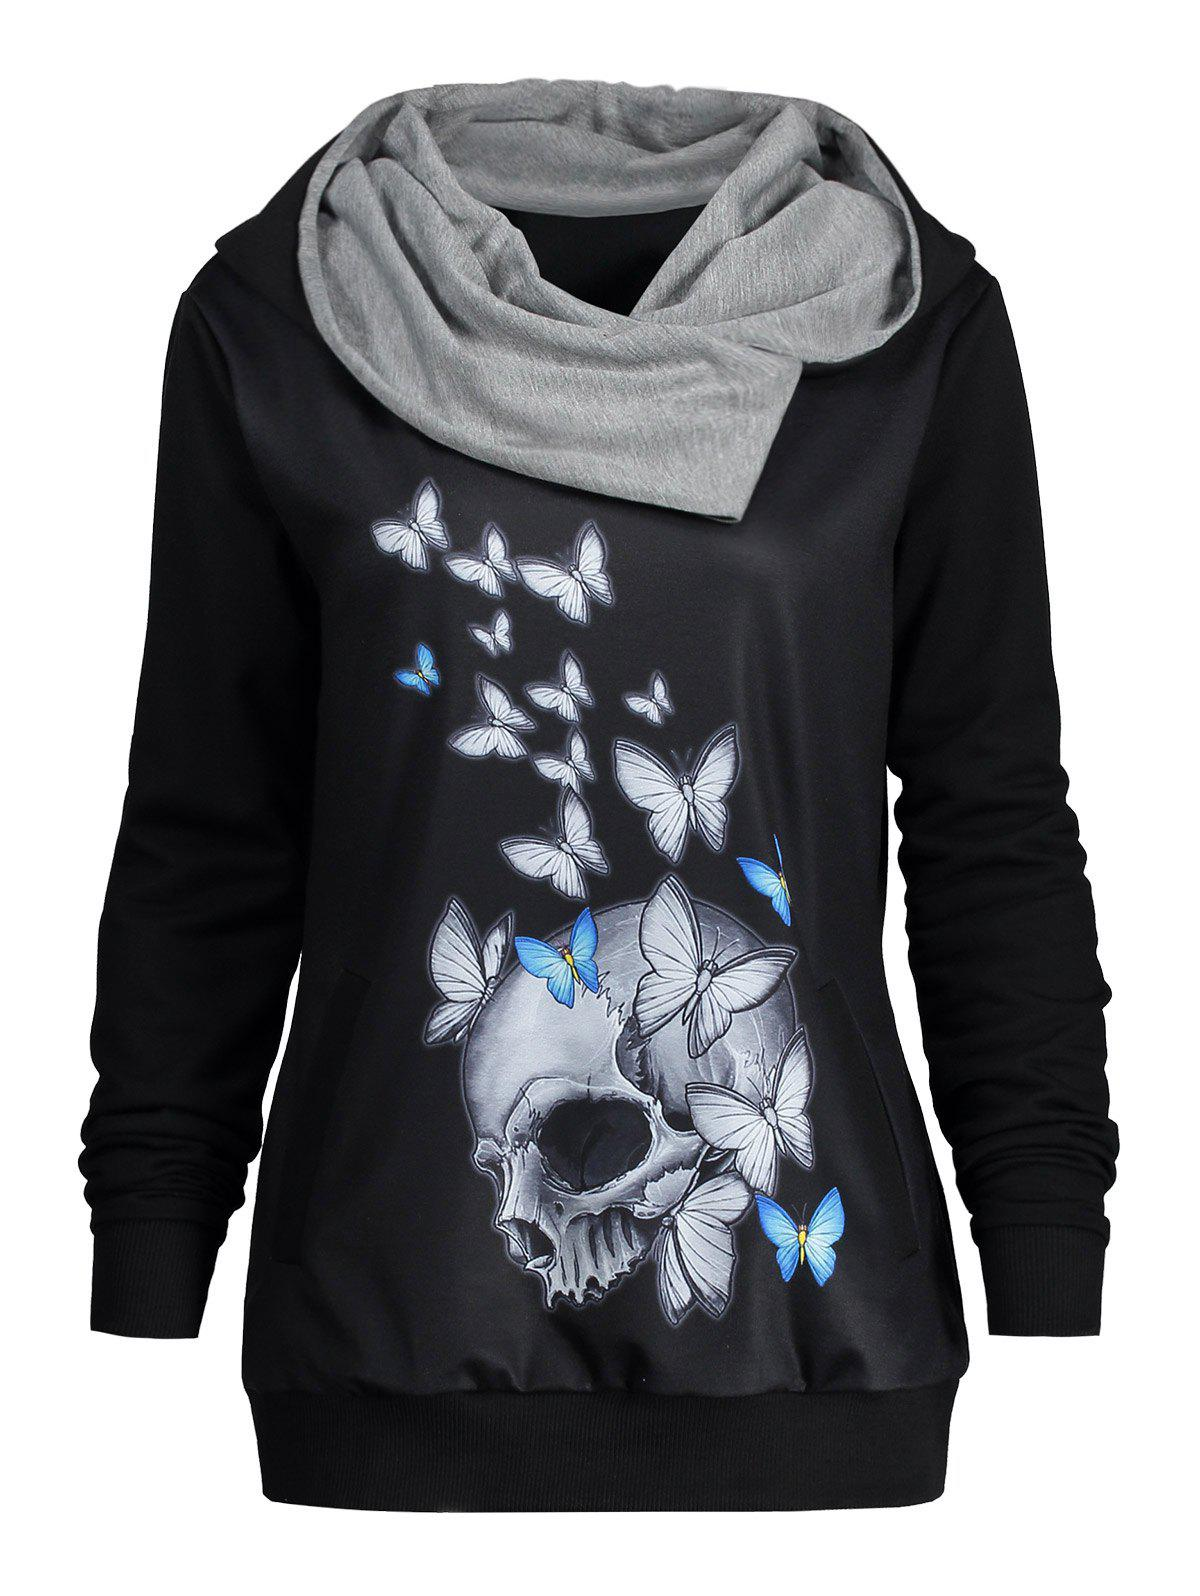 Halloween Butterfly Skull Print Heaps Collar HoodieWOMEN<br><br>Size: L; Color: BLACK; Material: Polyester; Shirt Length: Regular; Sleeve Length: Full; Style: Fashion; Pattern Style: Print,Skulls; Season: Fall,Spring,Winter; Weight: 0.5700kg; Package Contents: 1 x Hoodie;